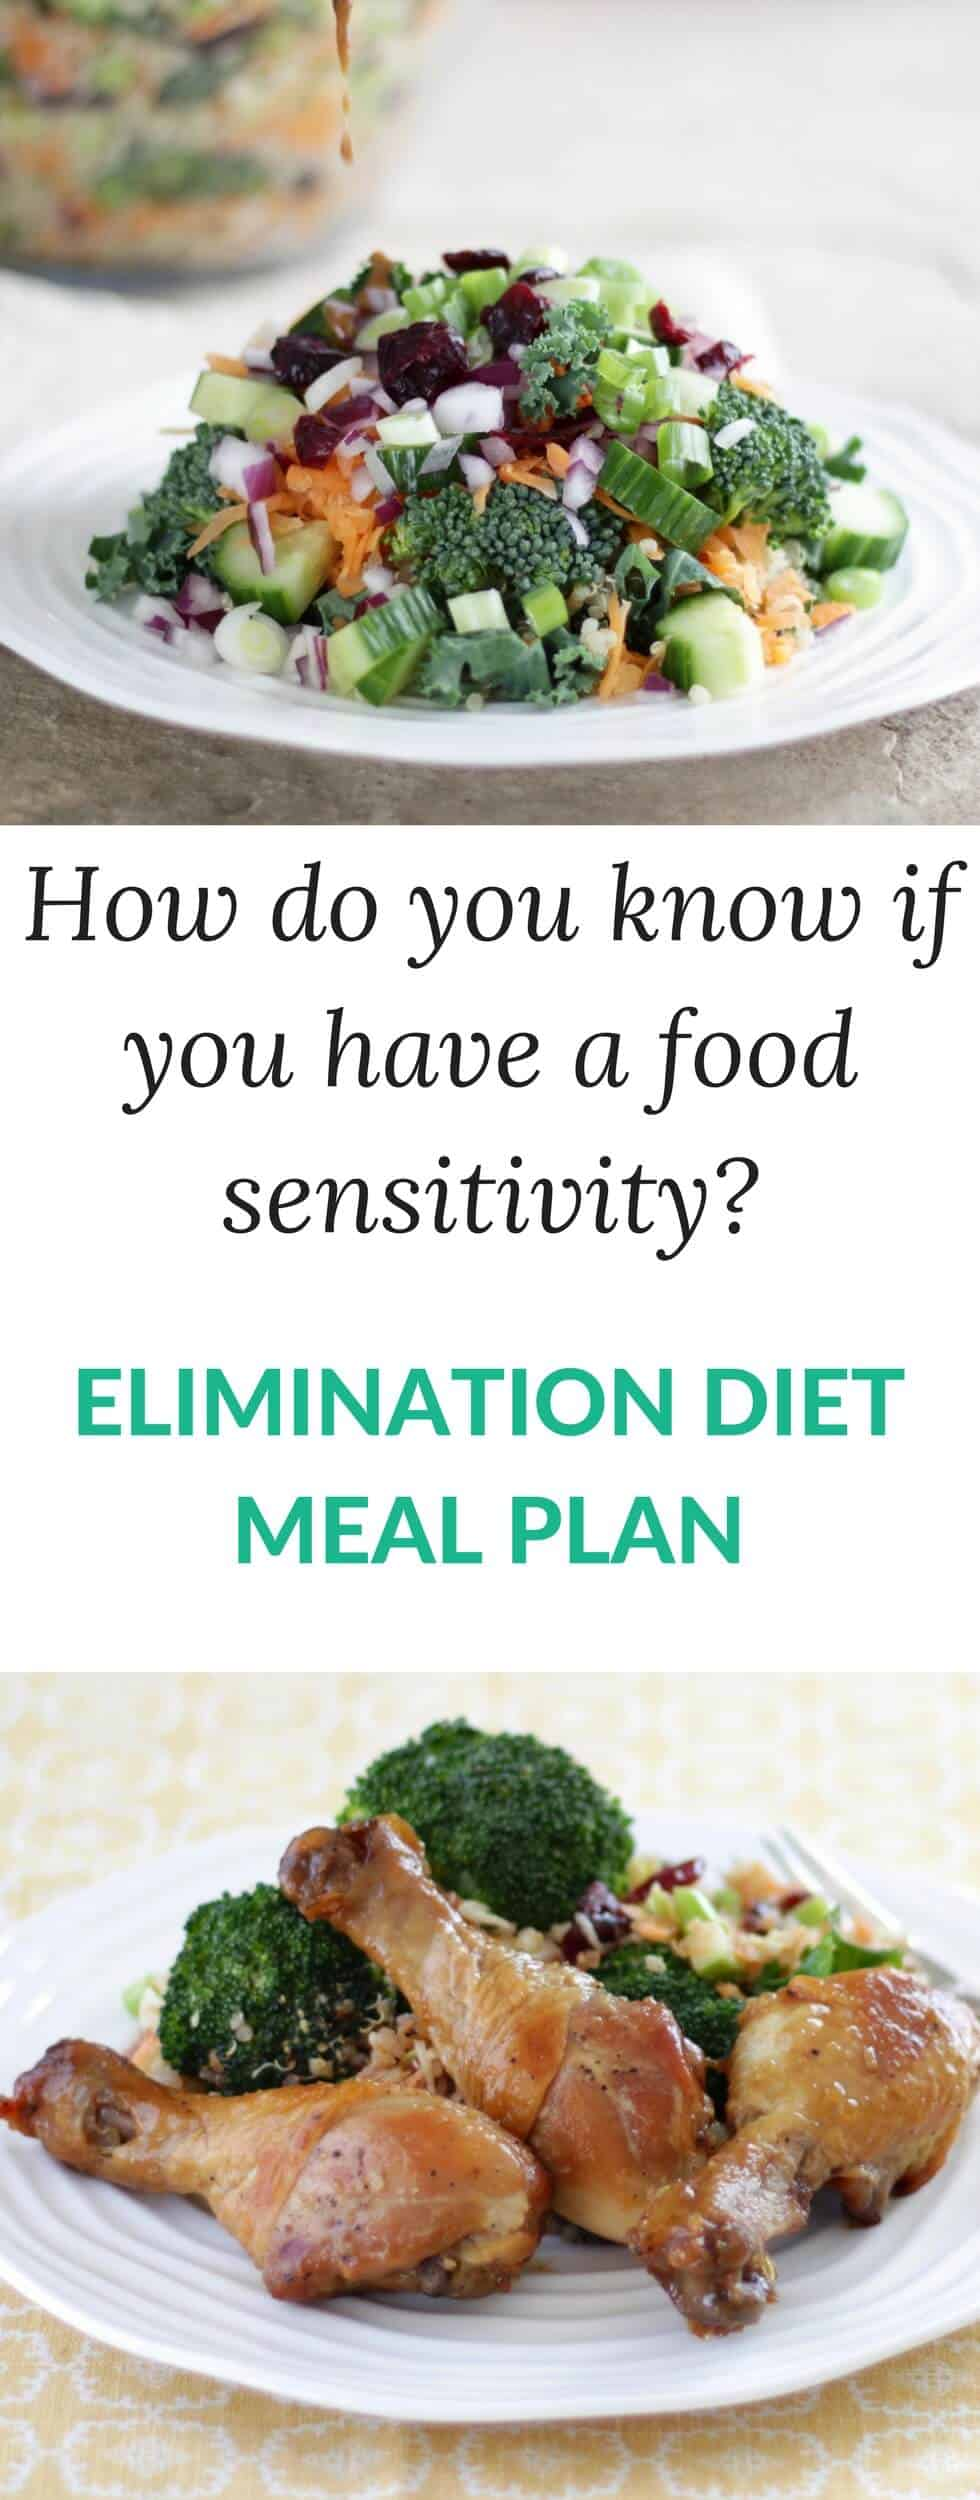 How do you know if you have a food sensitivity?  #plan #autoimmune